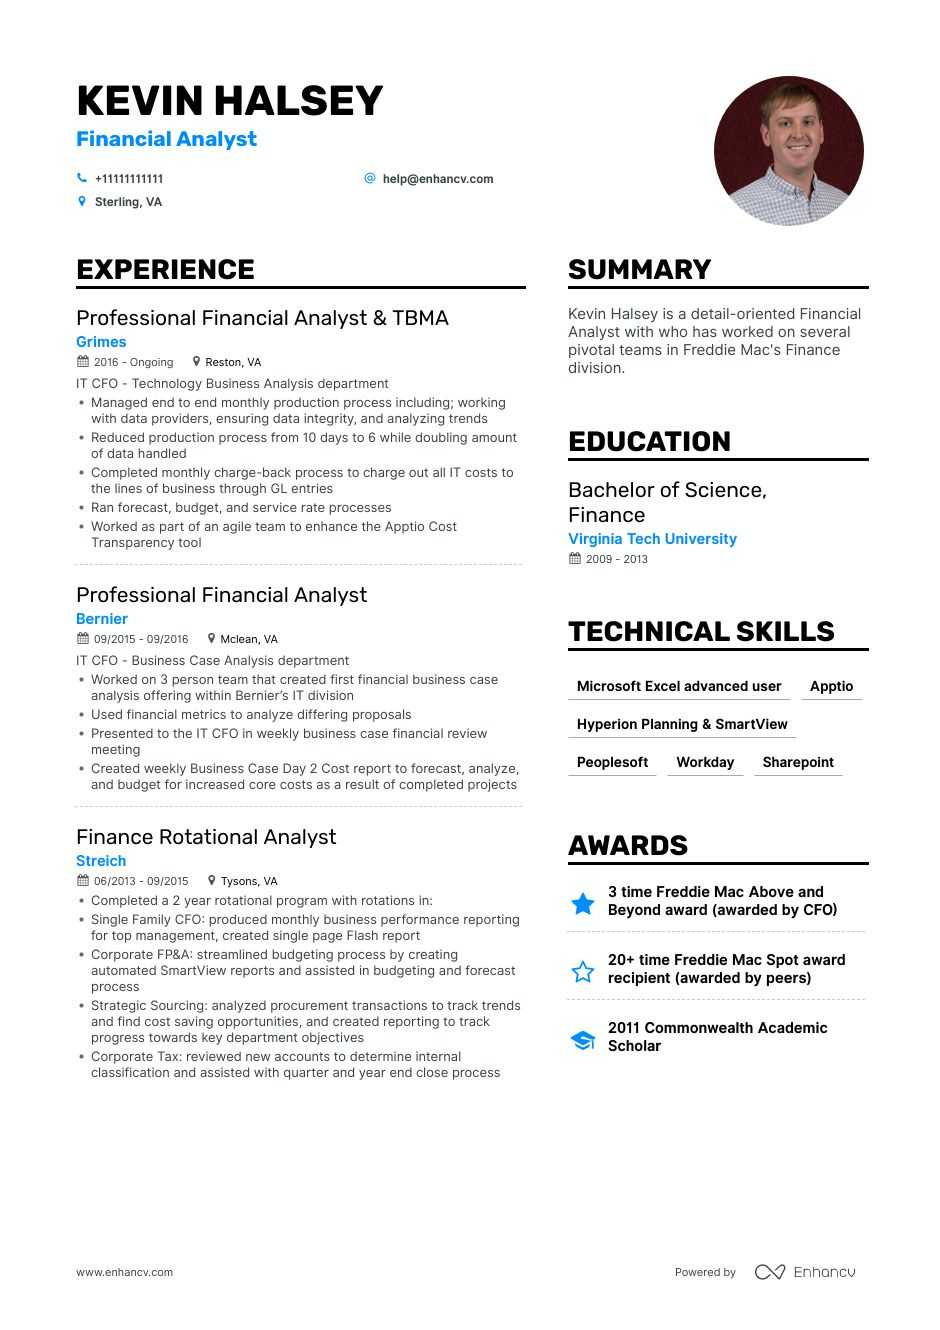 financial analyst resume example for enhancv best finance templates coordinate synonym Resume Best Finance Resume Templates